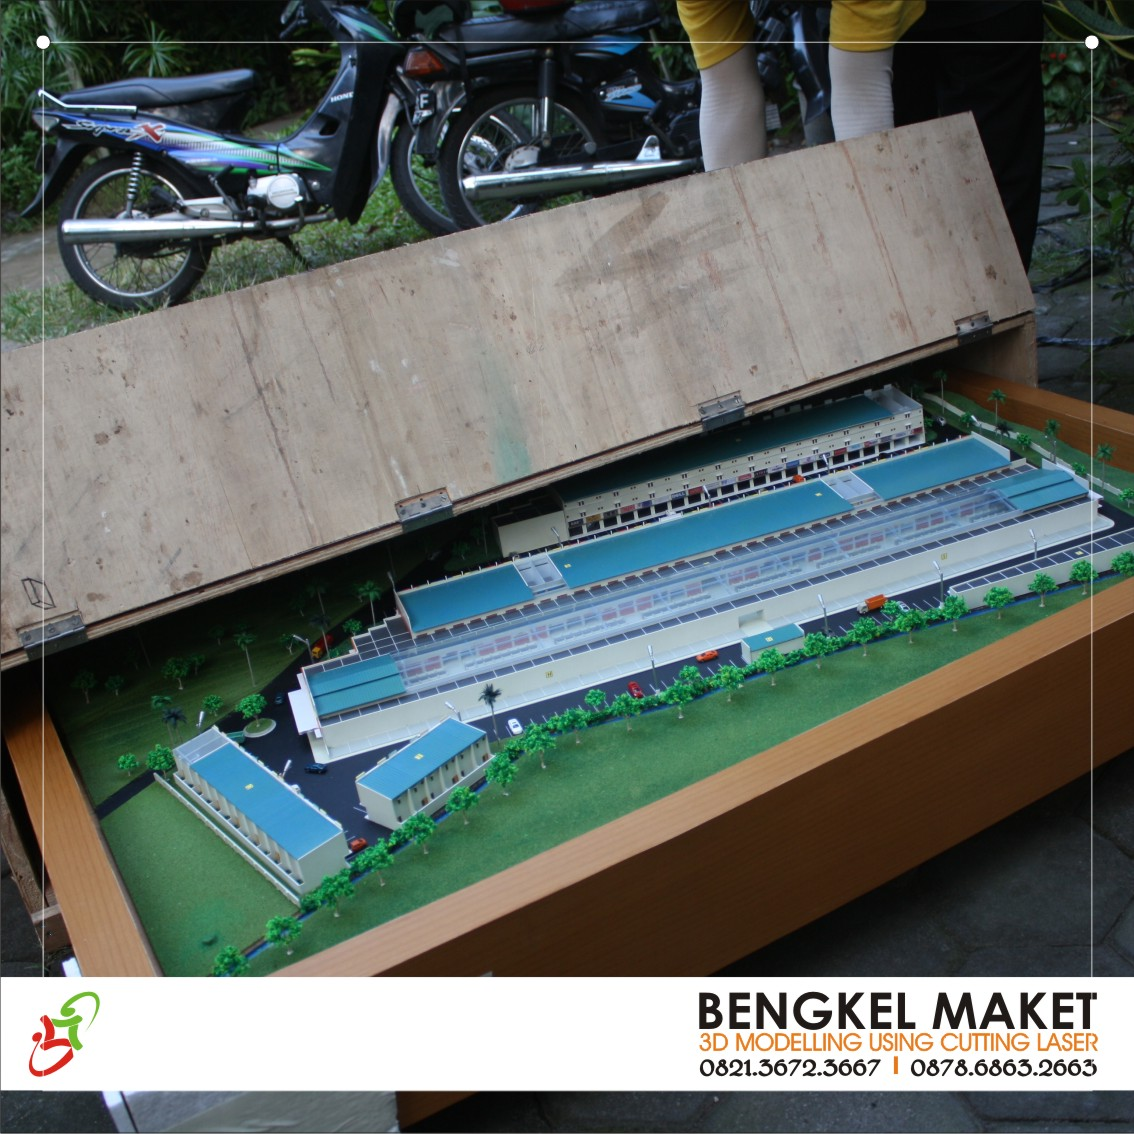 17. packing maket pasar mama, JAMBI.